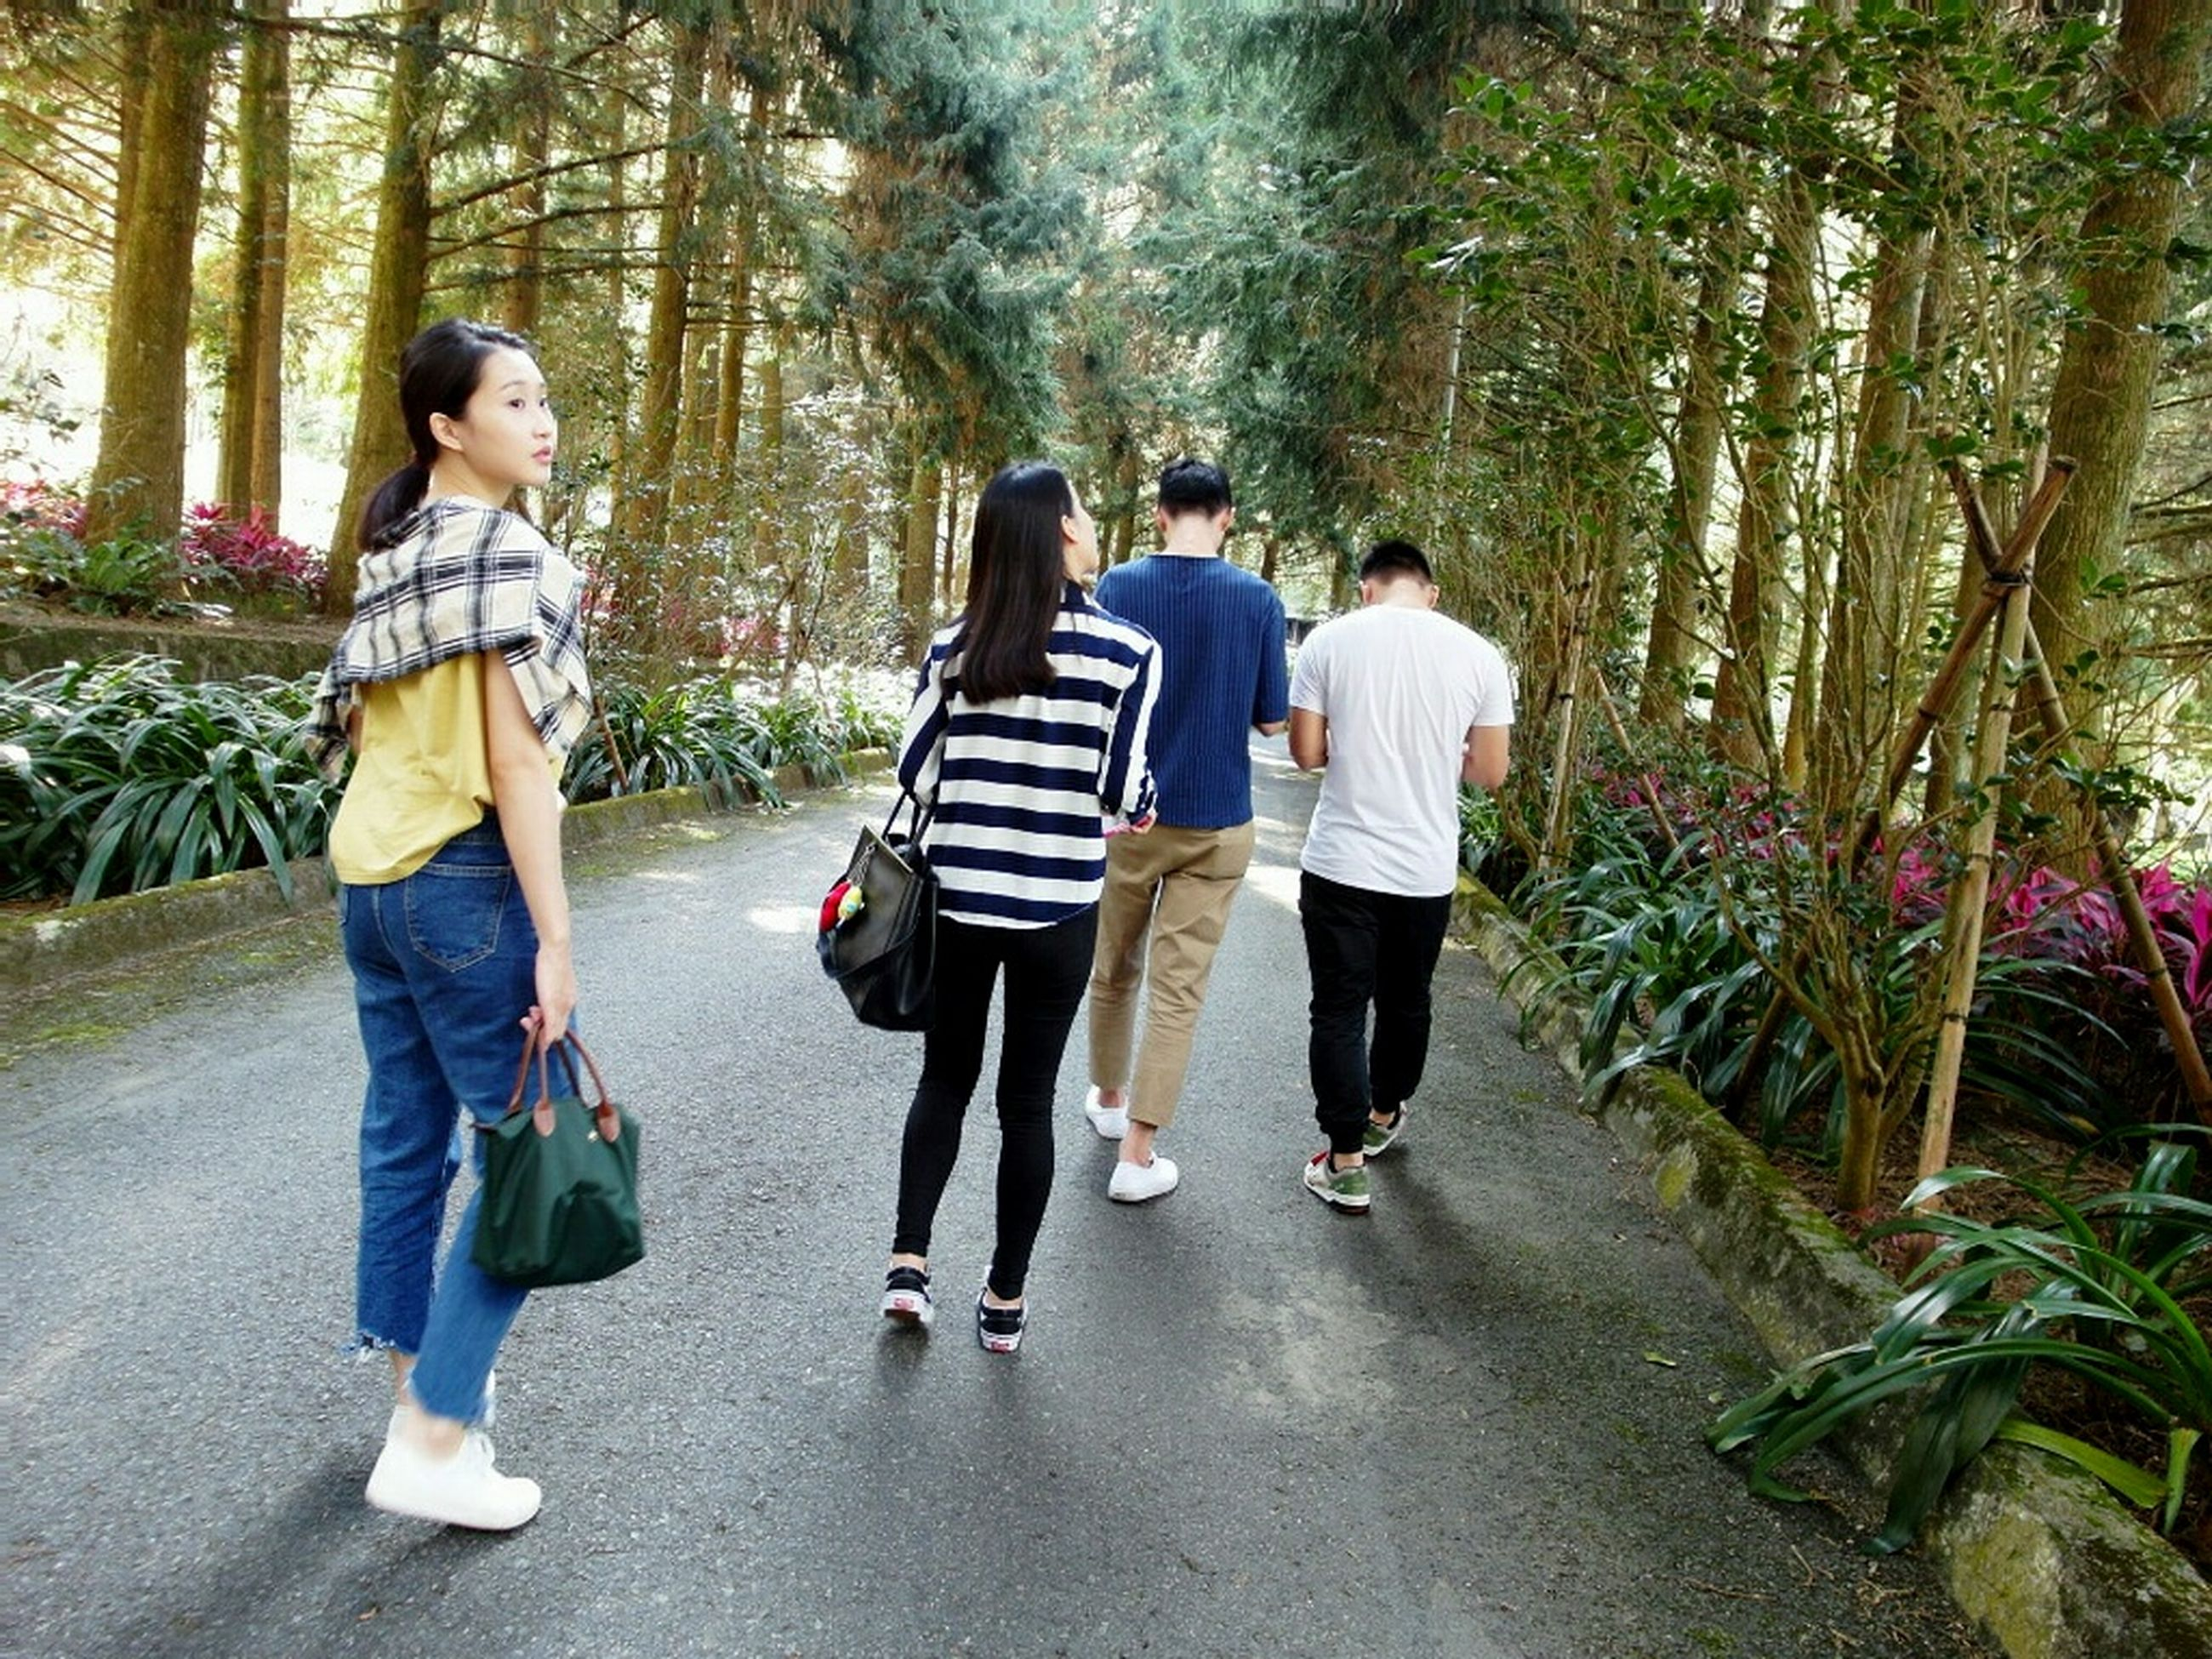 tree, full length, lifestyles, rear view, leisure activity, walking, casual clothing, togetherness, bonding, men, forest, person, love, boys, footpath, childhood, the way forward, park - man made space